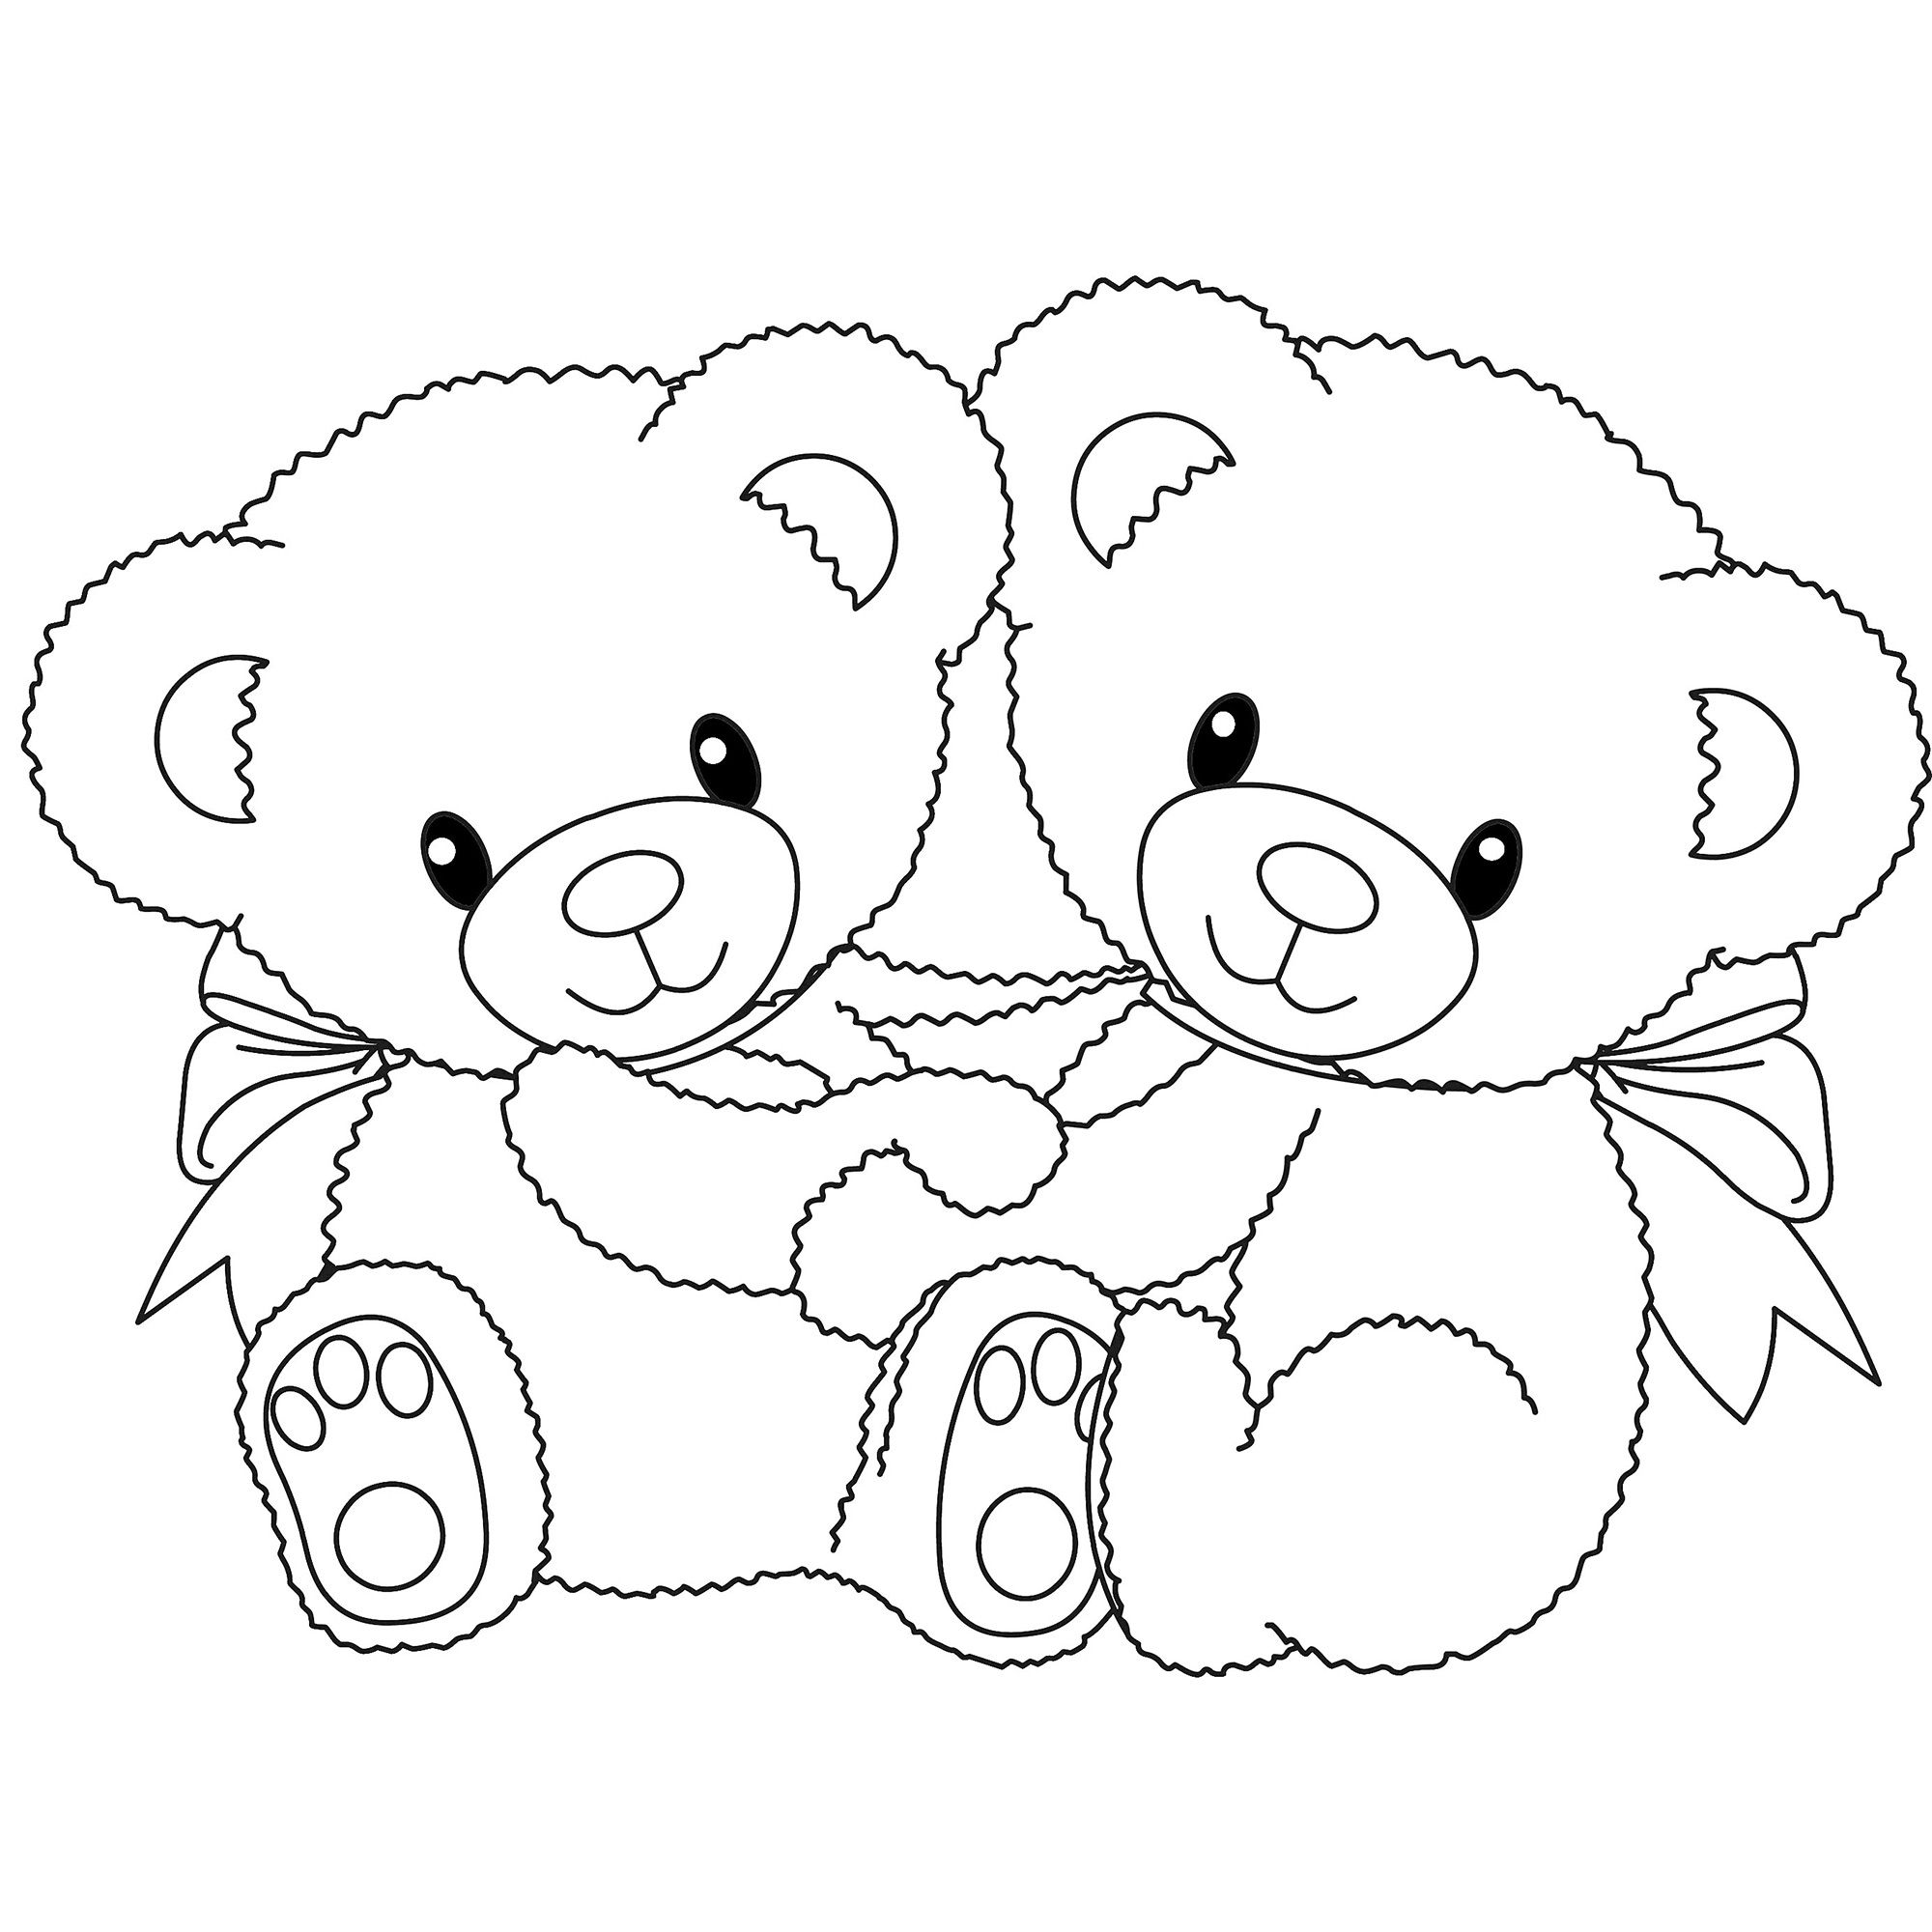 Polar animals coloring pages for kids - Teddy Bear With Couple Coloring Pages Online Printable